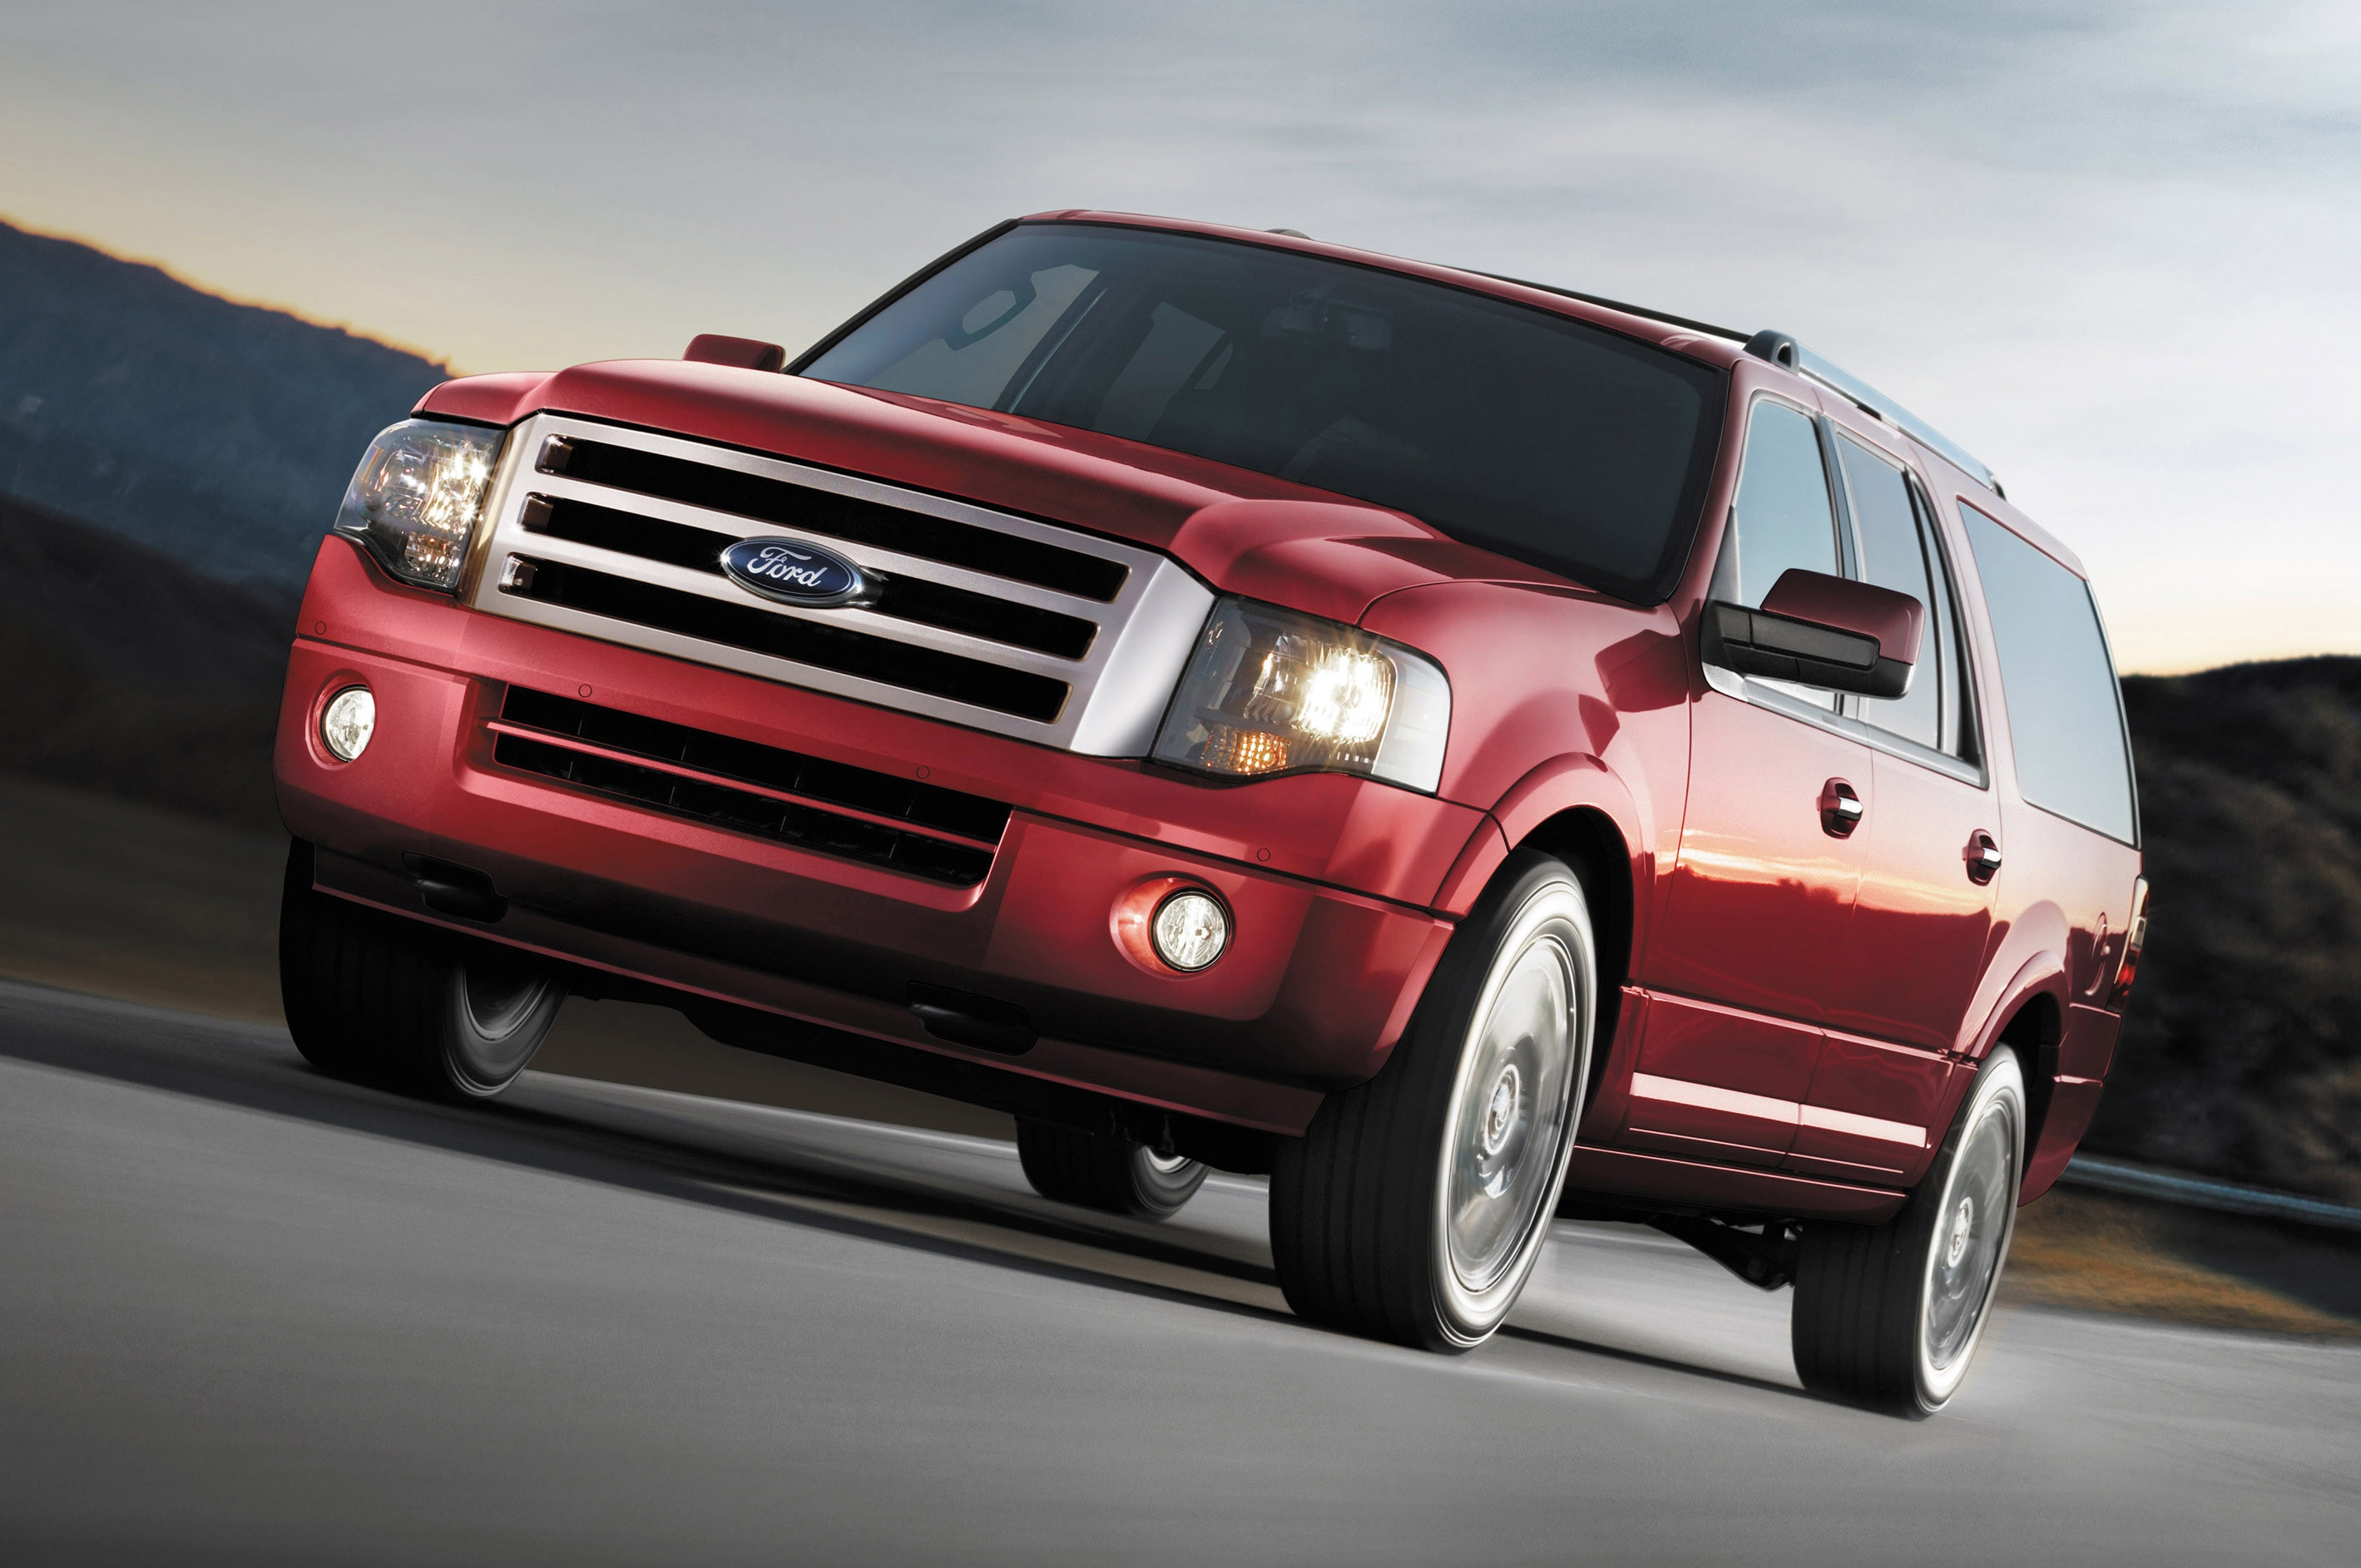 2014 Ford Expedition #3